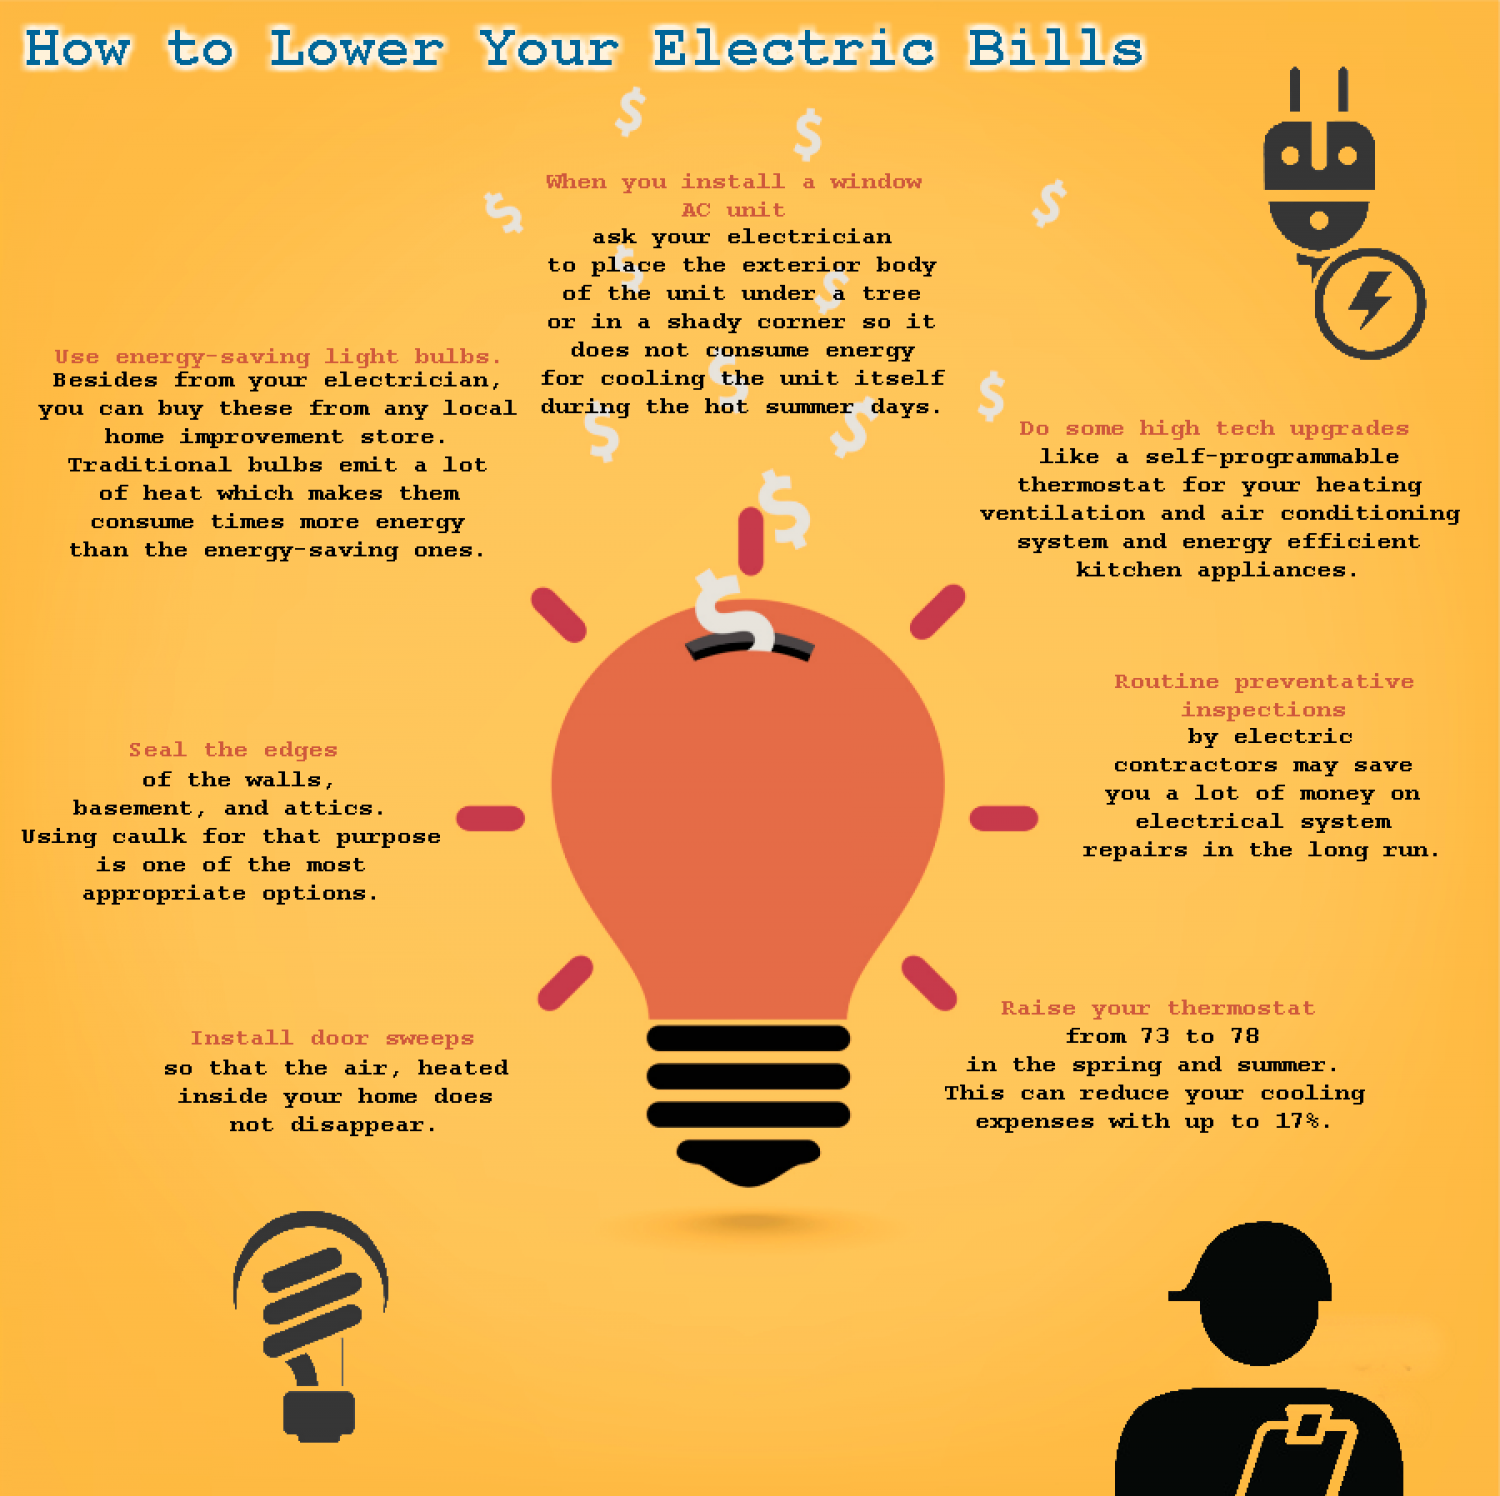 How to Lower Your Electric Bills  Infographic